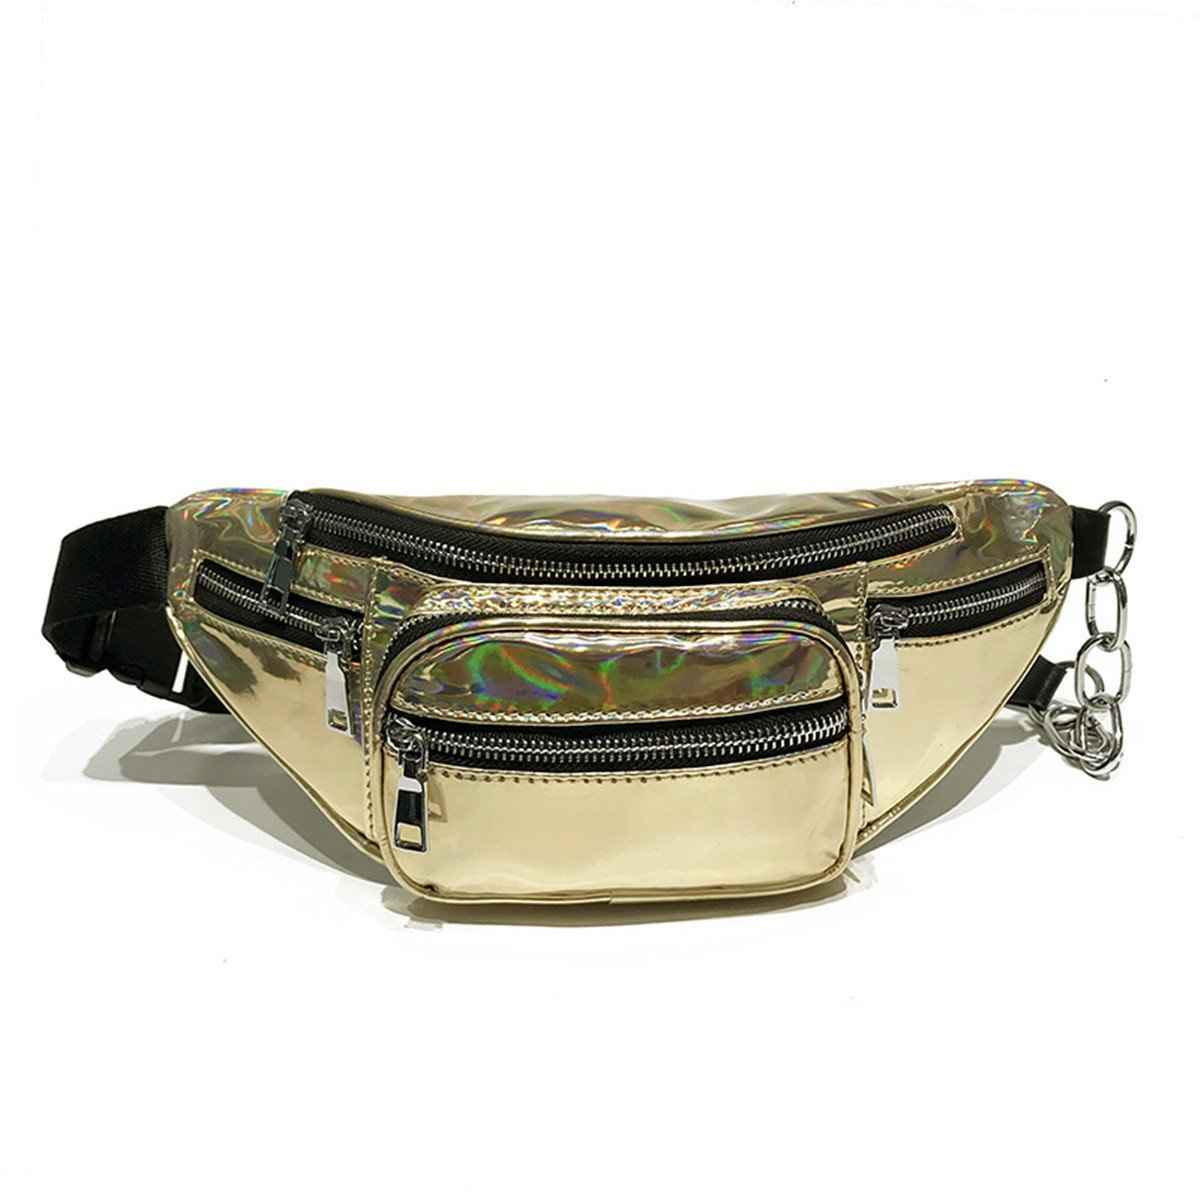 Andear Womens Shiny Holographic Laser Bumbag Waterproof Fanny Pack PU Leather Outdoor Sports Waist Bag Hip Pack